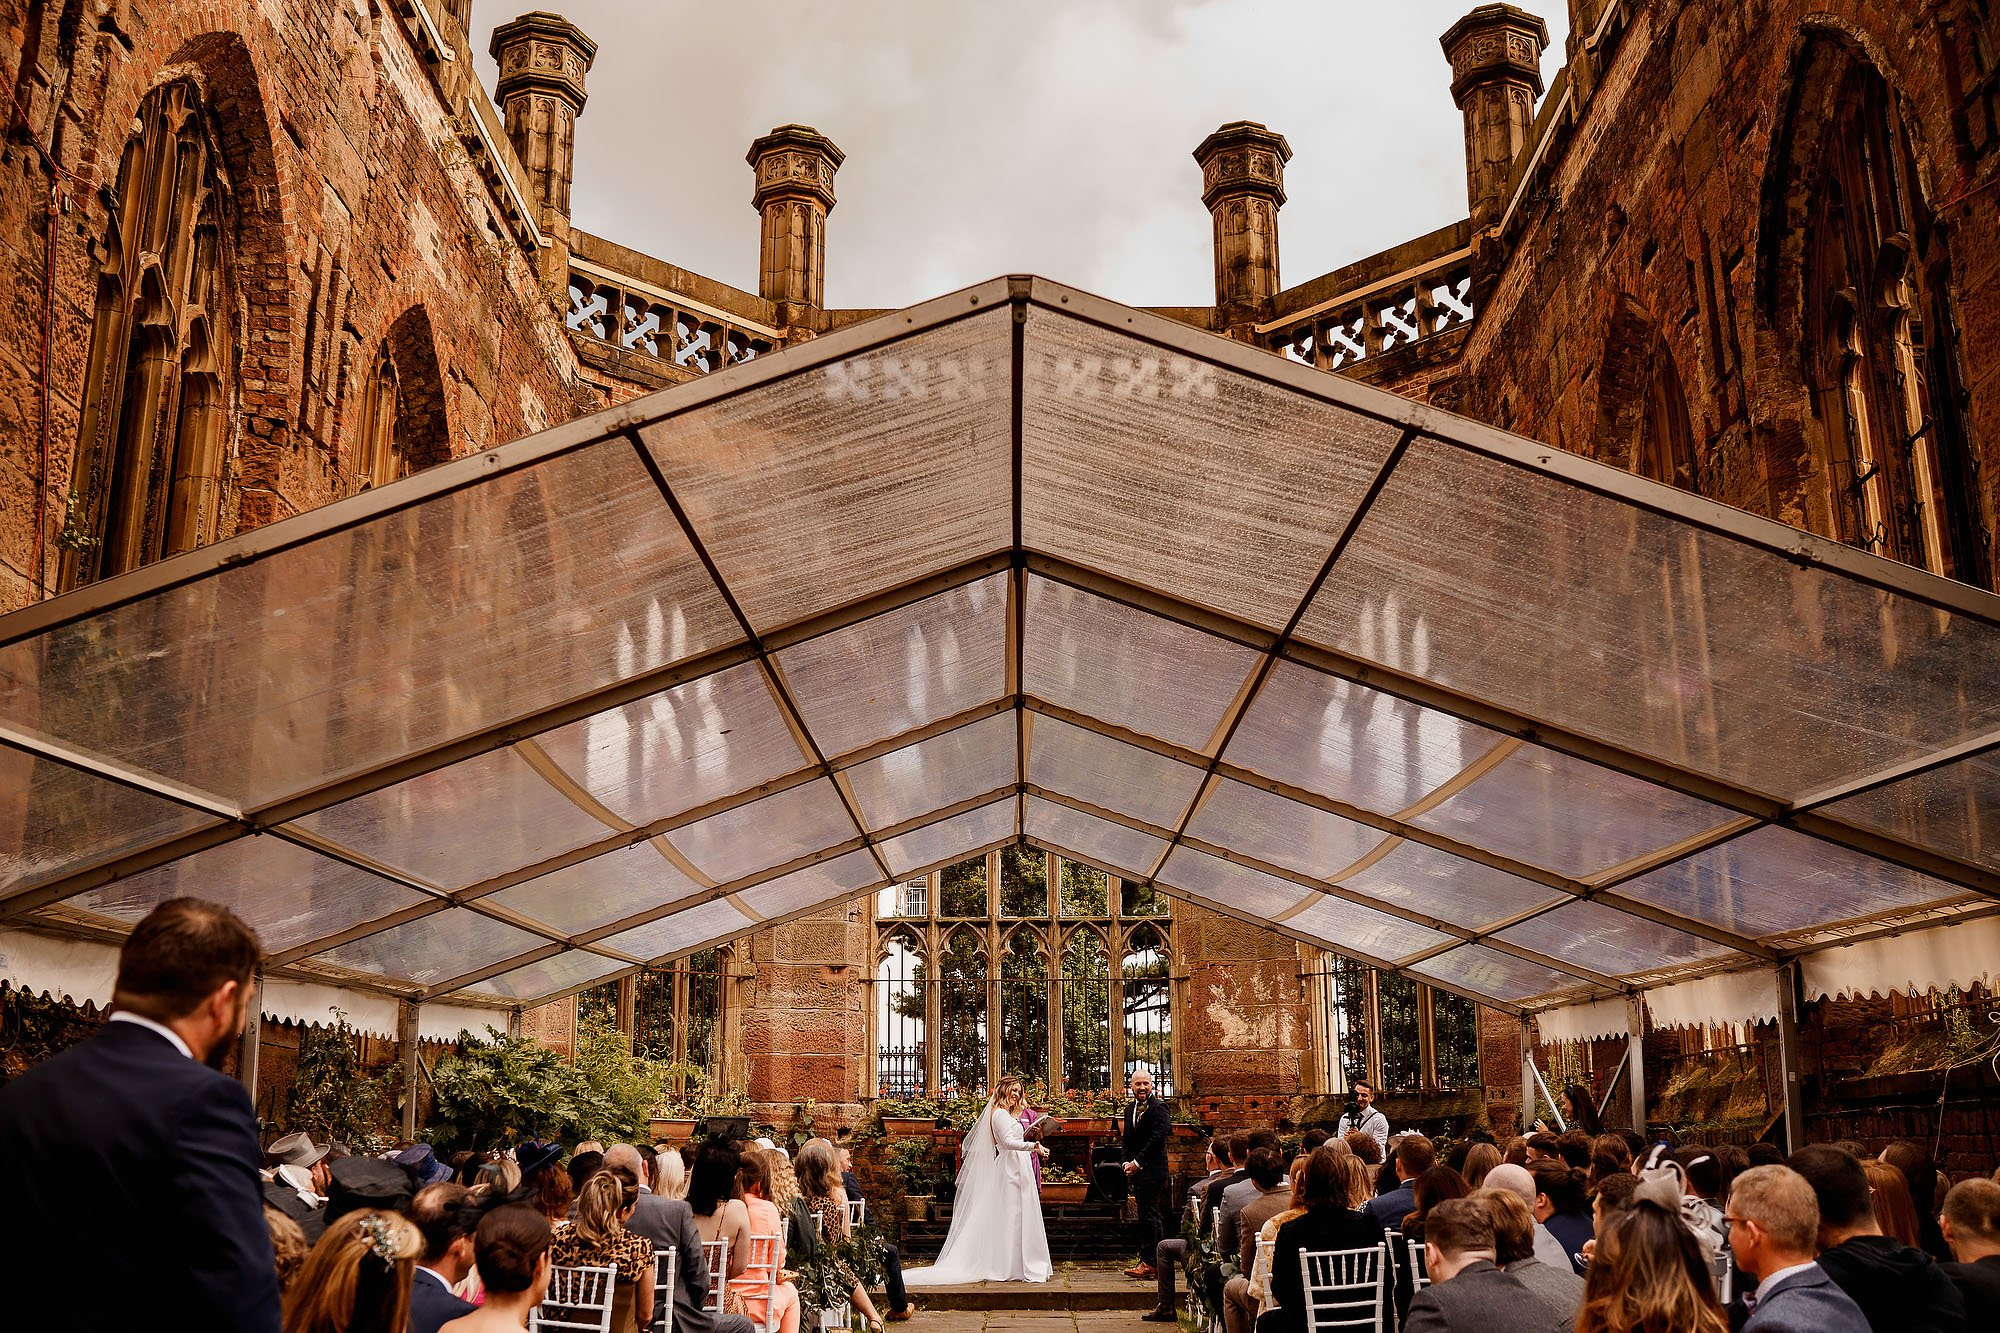 Bombed out Church and One Fine Day Liverpool wedding photography - ARJ Photography®